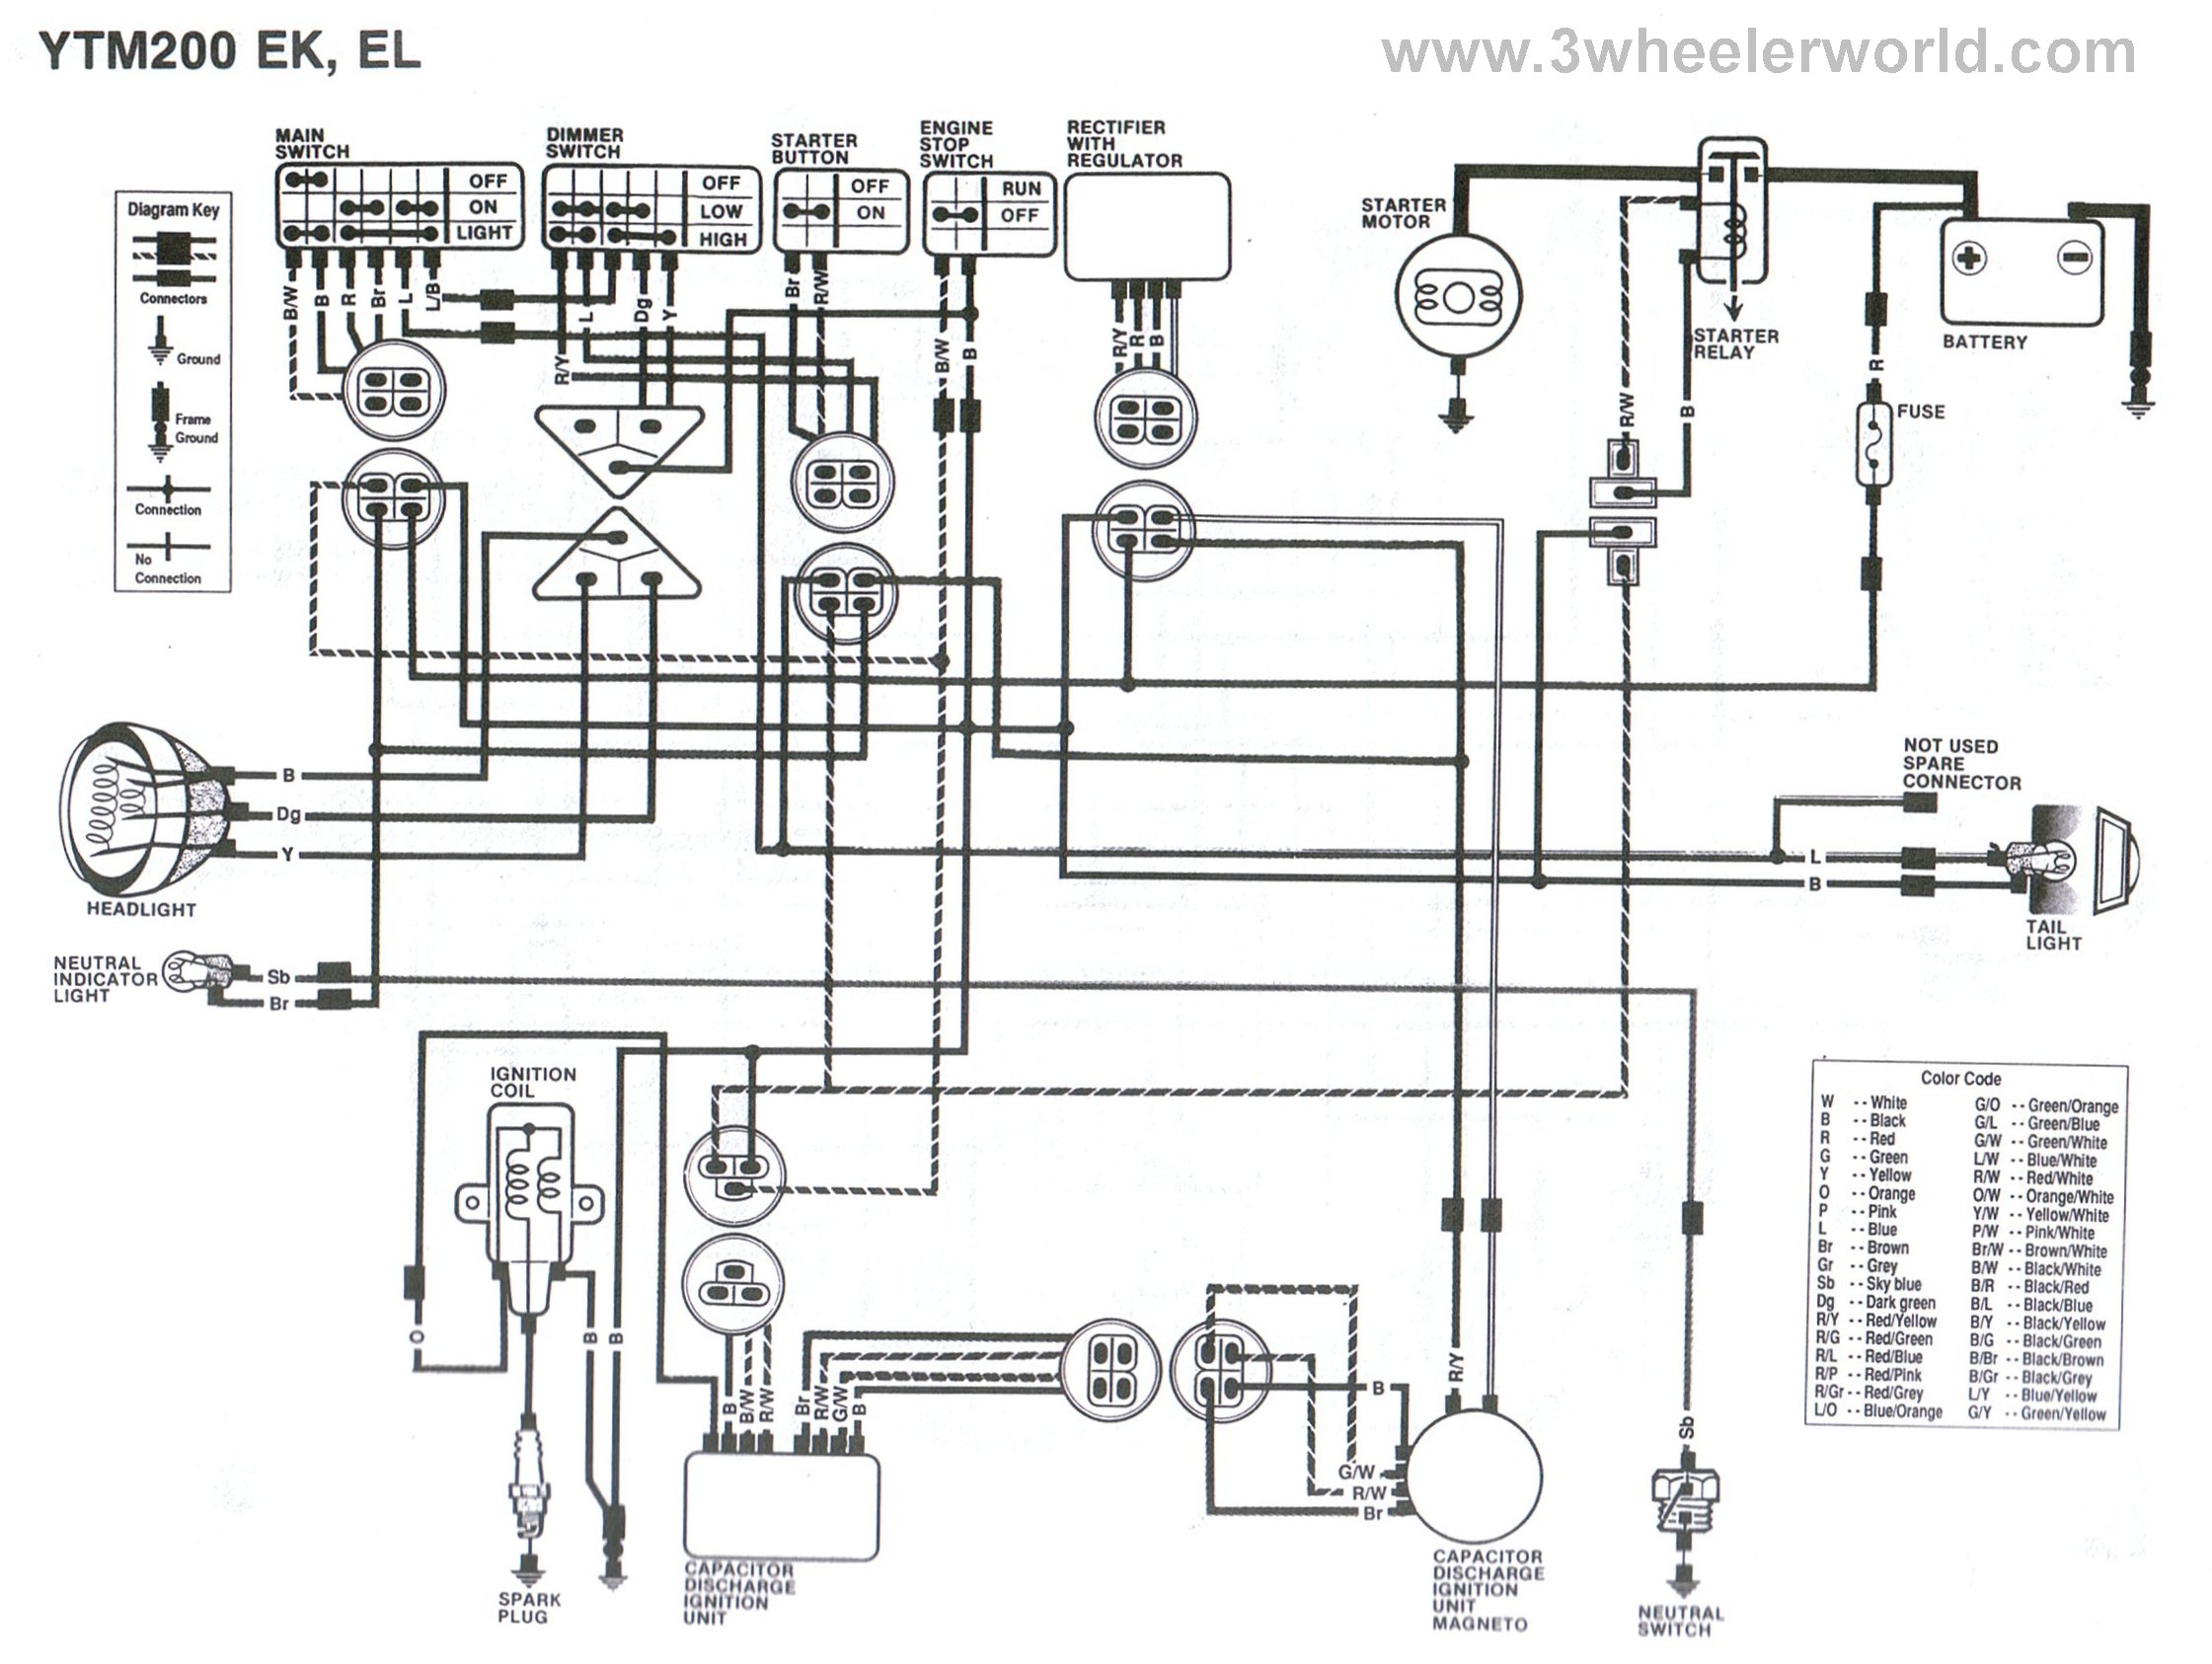 YTM200EKEL 3 wheeler world tech help yamaha wiring diagrams 1980 yamaha xt 250 wiring diagram at reclaimingppi.co